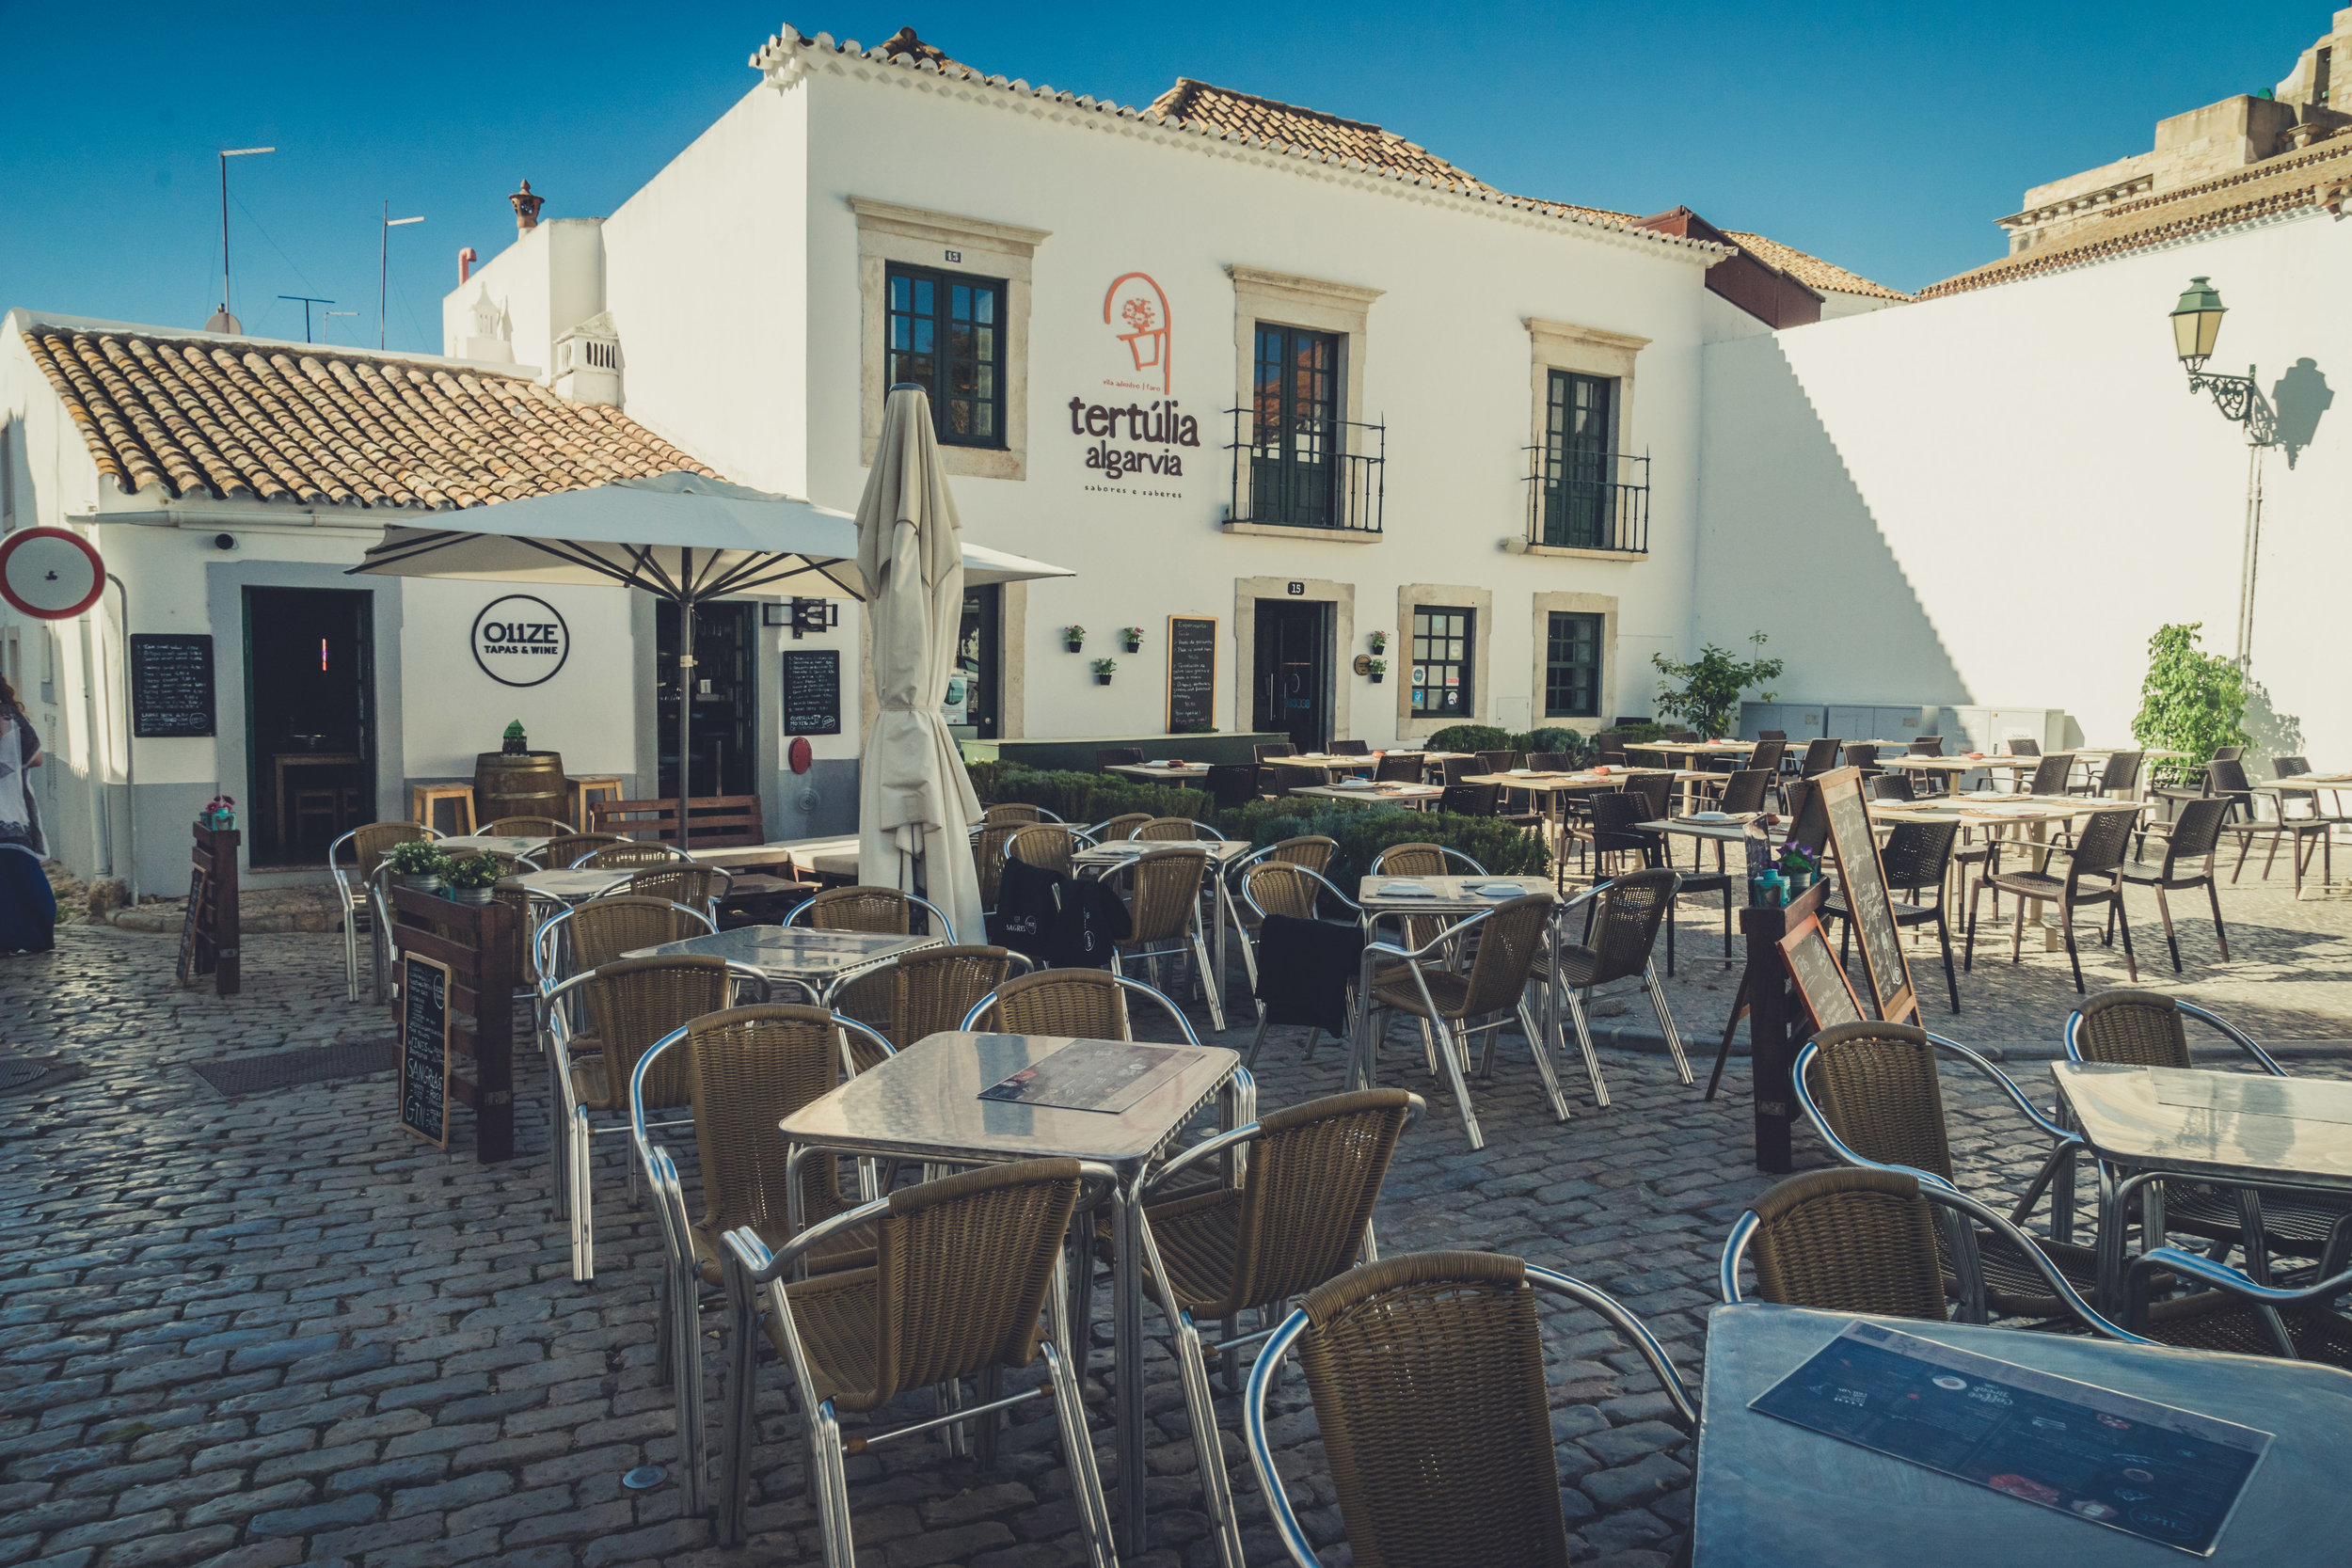 tertuliea in faro. faro in the algarve. old town faro.jpg